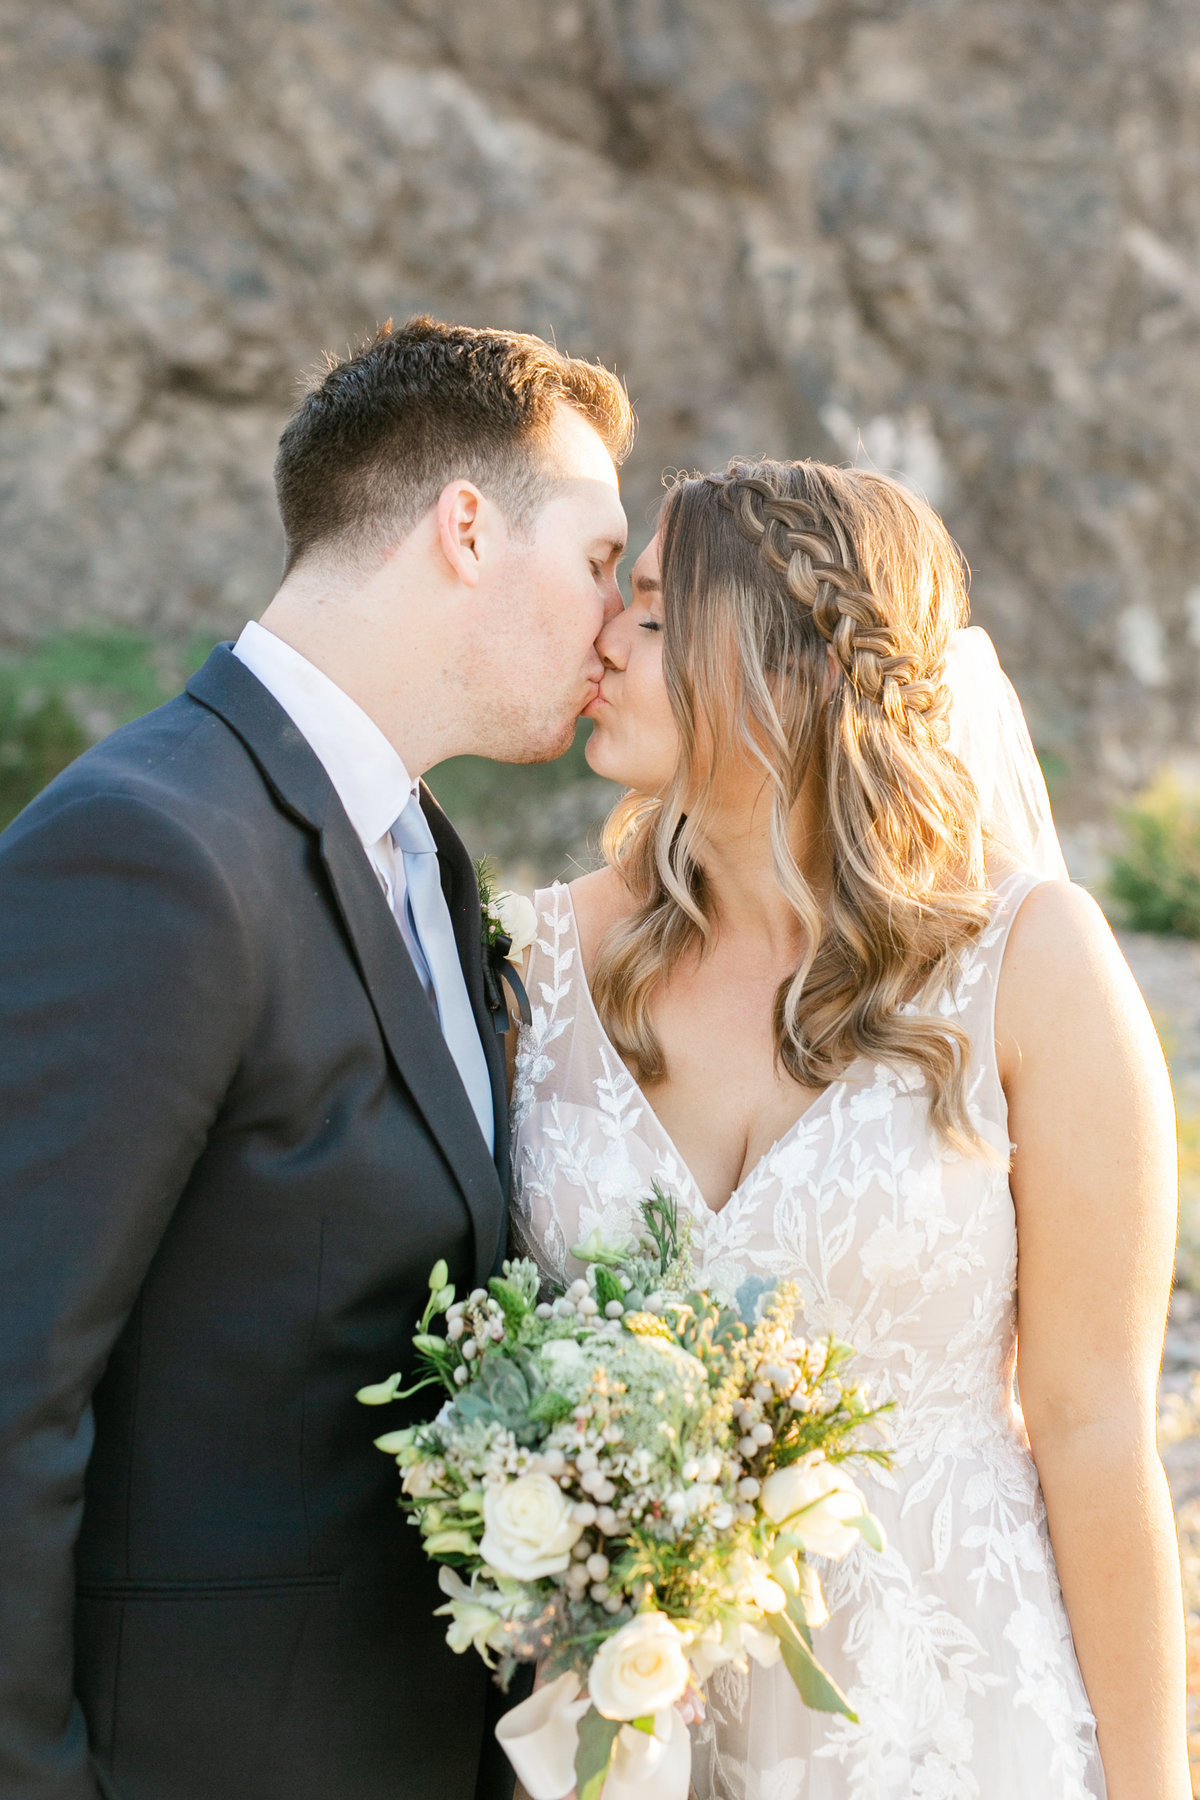 Karlie Colleen Photography - Arizona Backyard wedding - Brittney & Josh-200